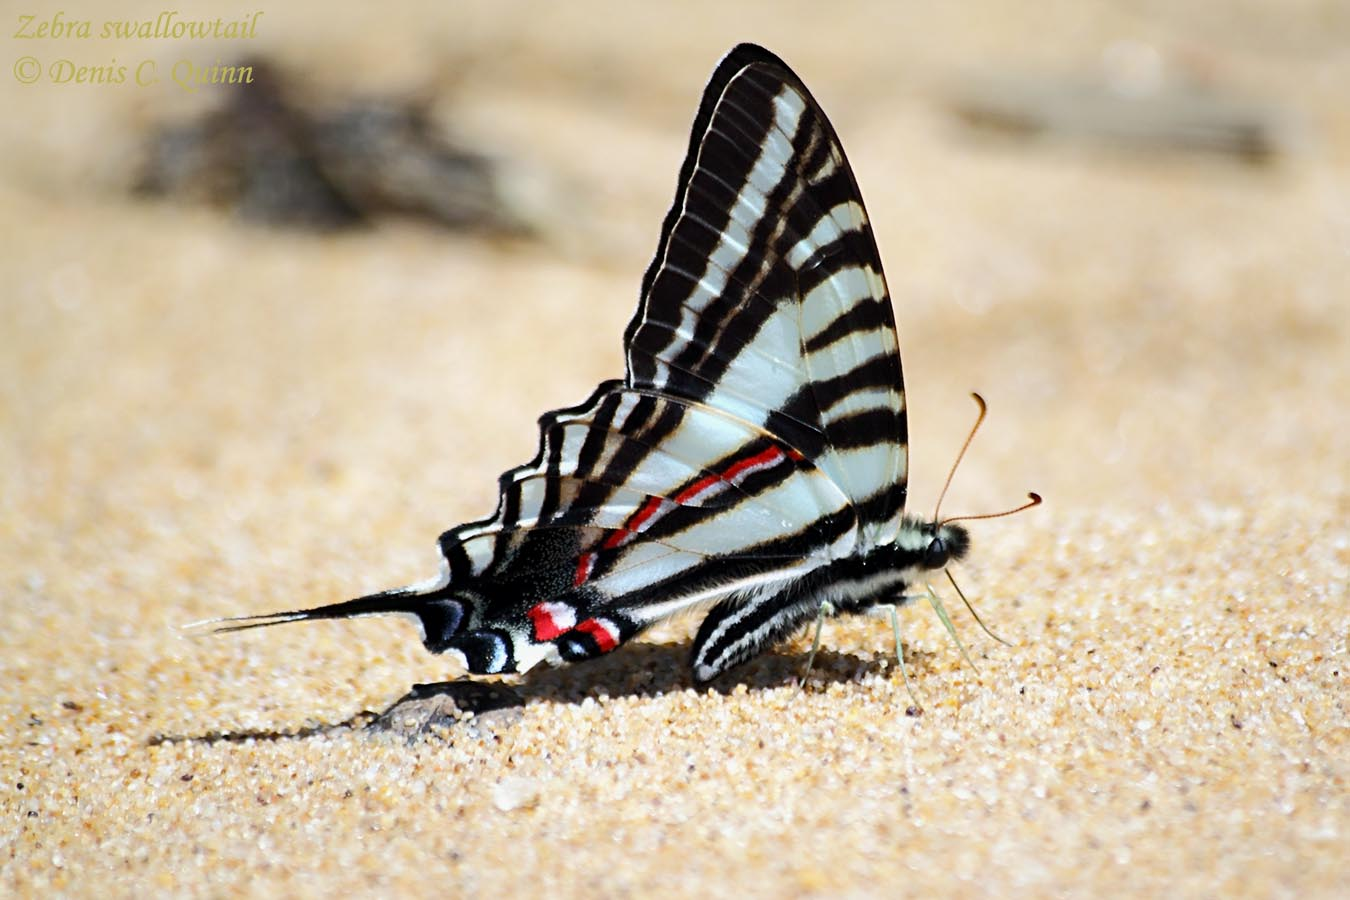 displaying 19 gallery images for zebra swallowtail butterfly